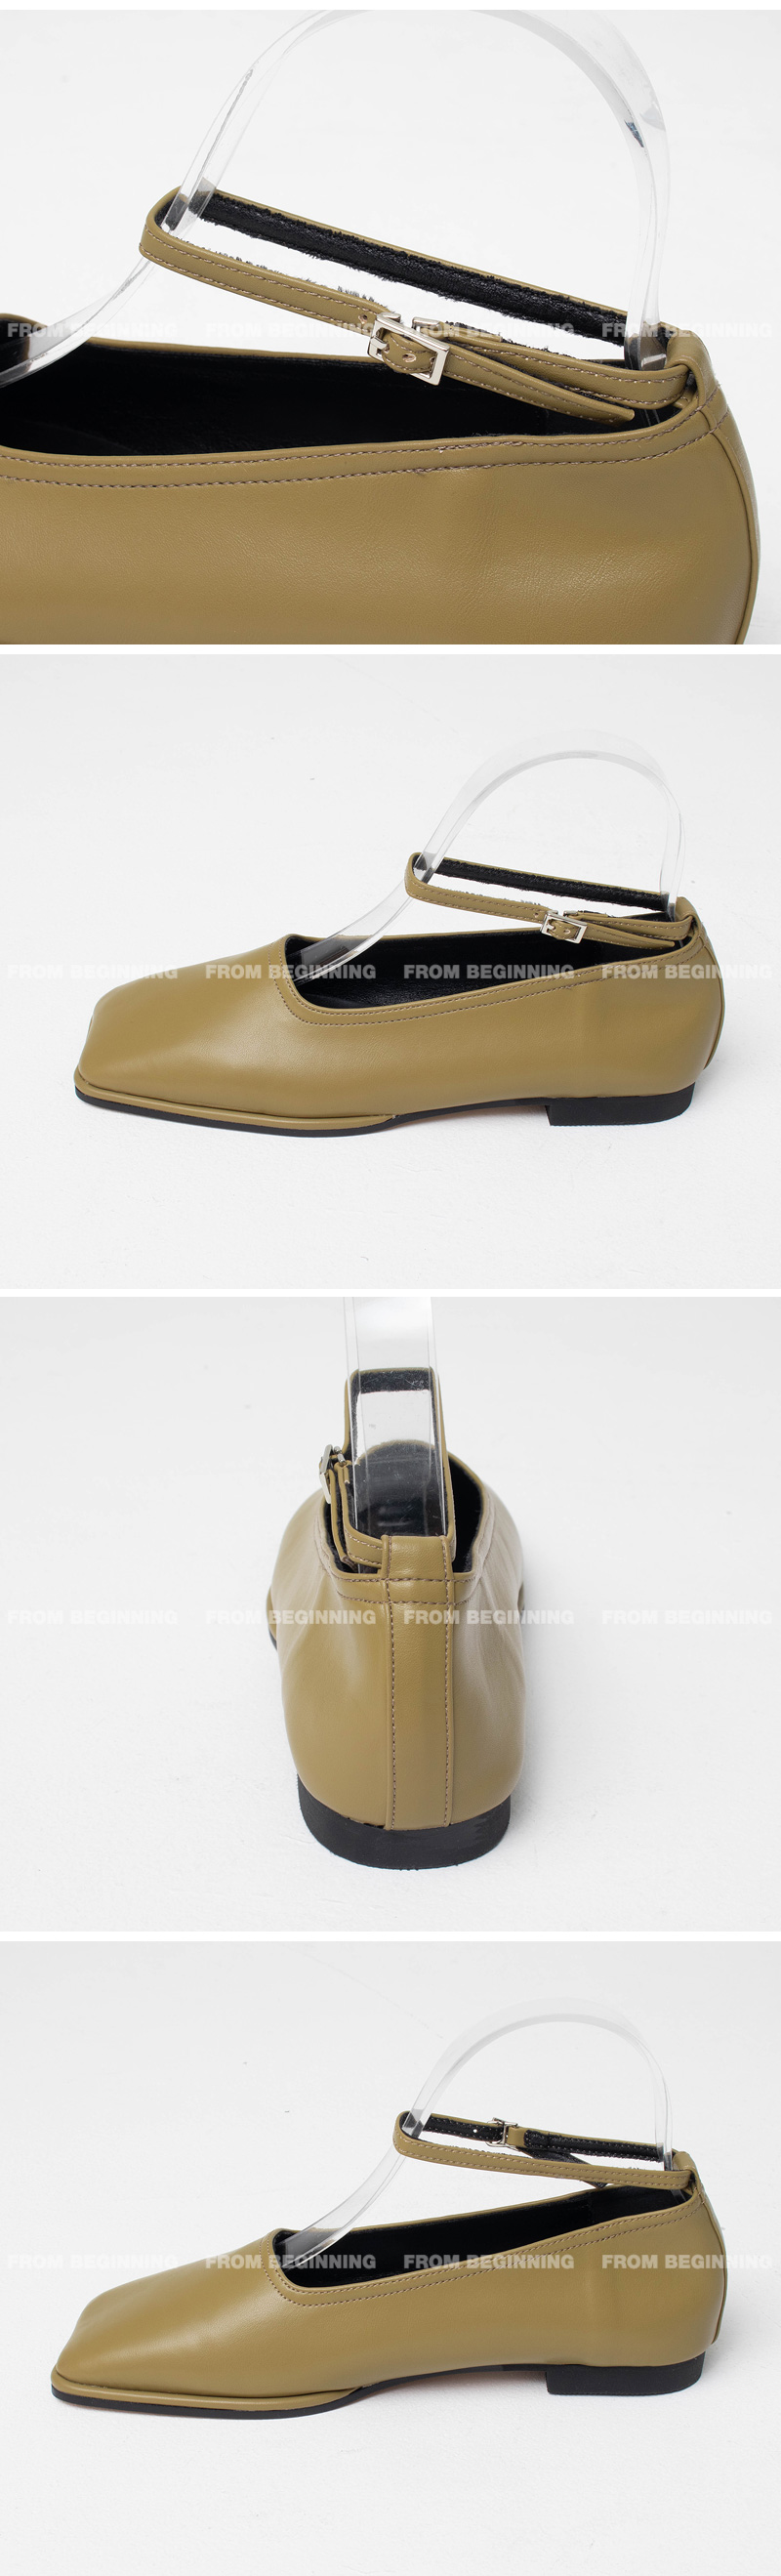 ankle mary jane flat shoes